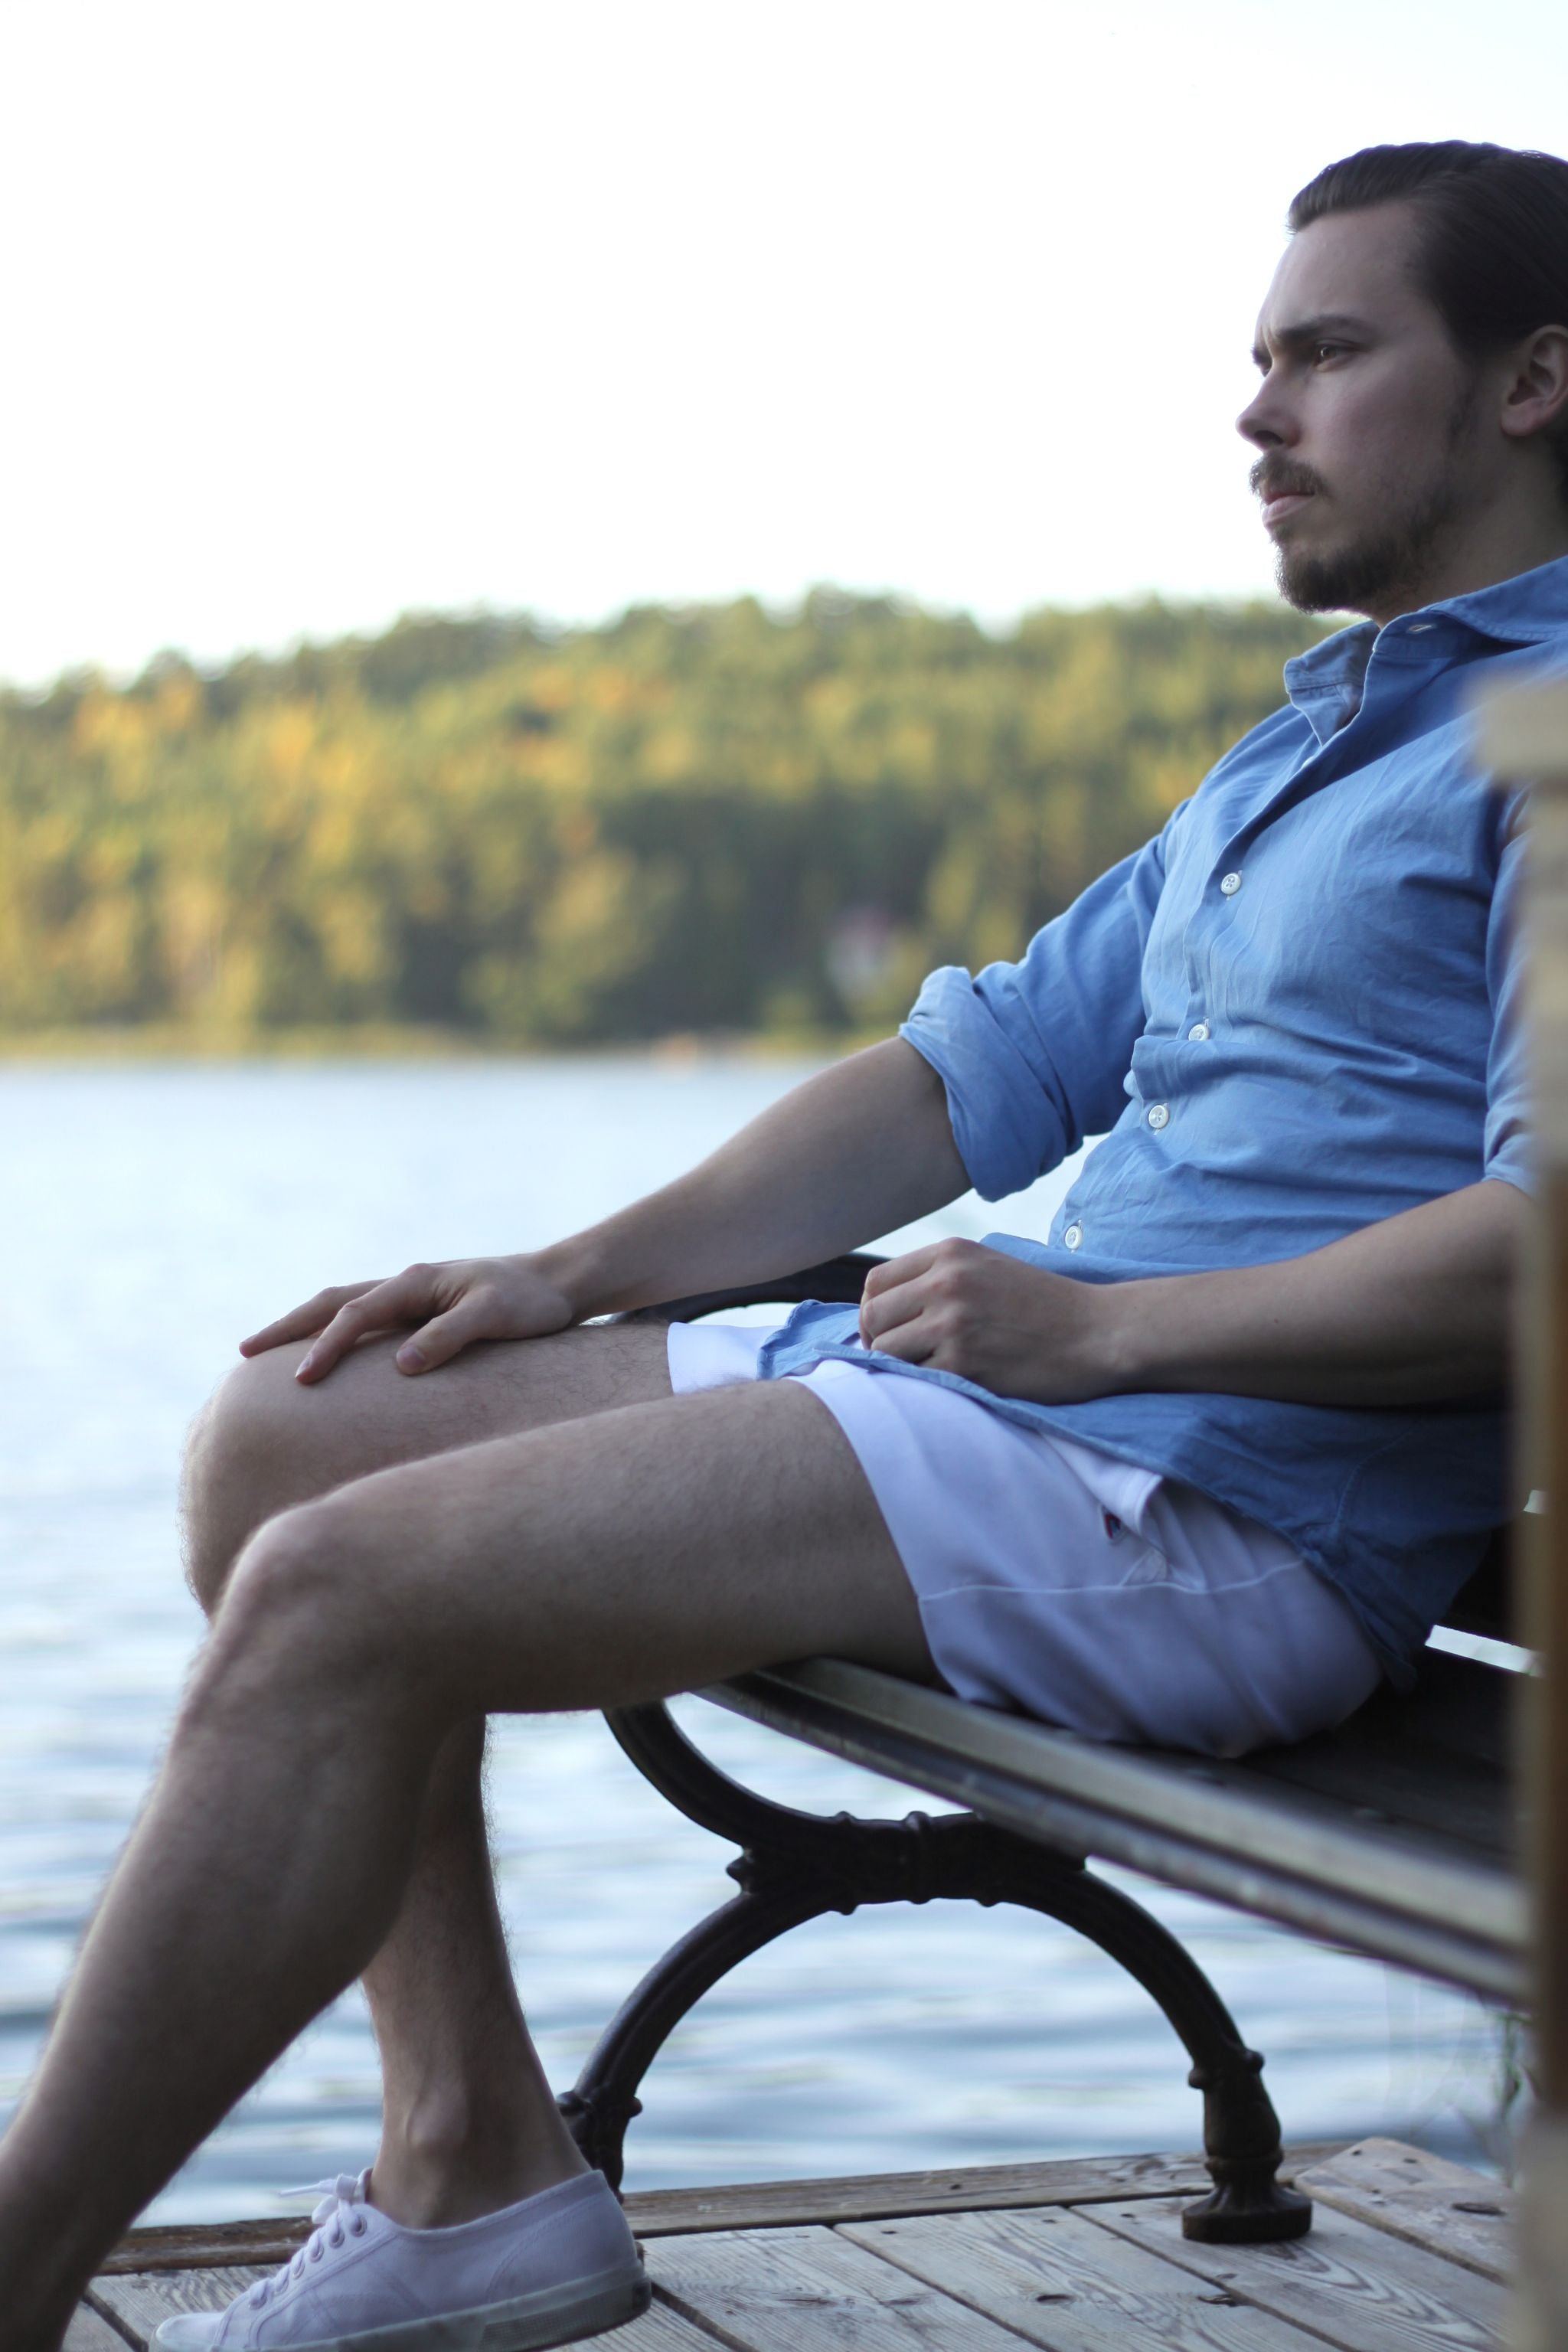 Relaxing - Denim shirt and tennis shorts